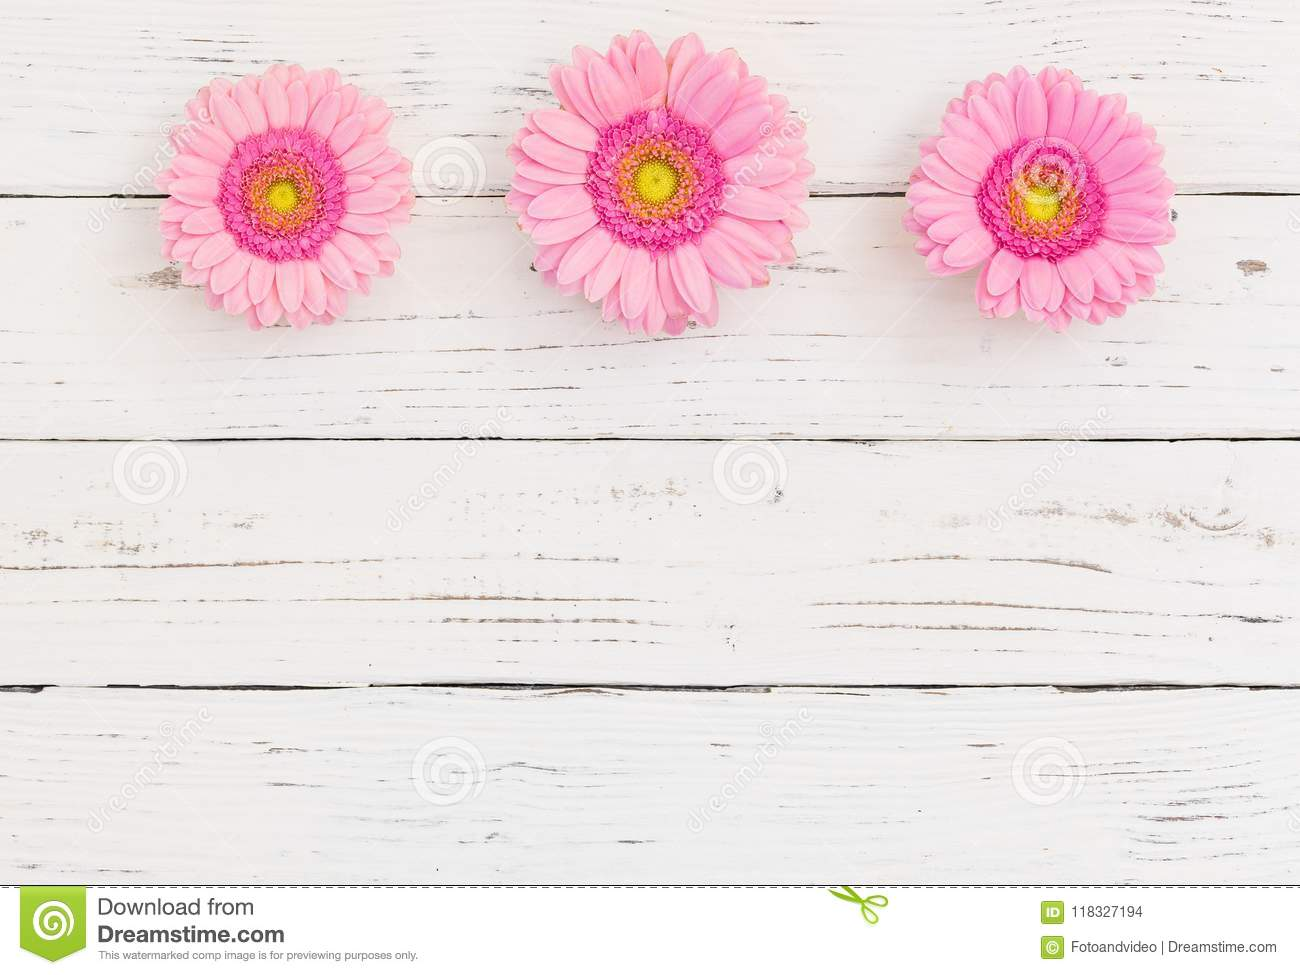 Beautiful pink gerbera daisy flowers border on white wood background download beautiful pink gerbera daisy flowers border on white wood background with copy space top izmirmasajfo